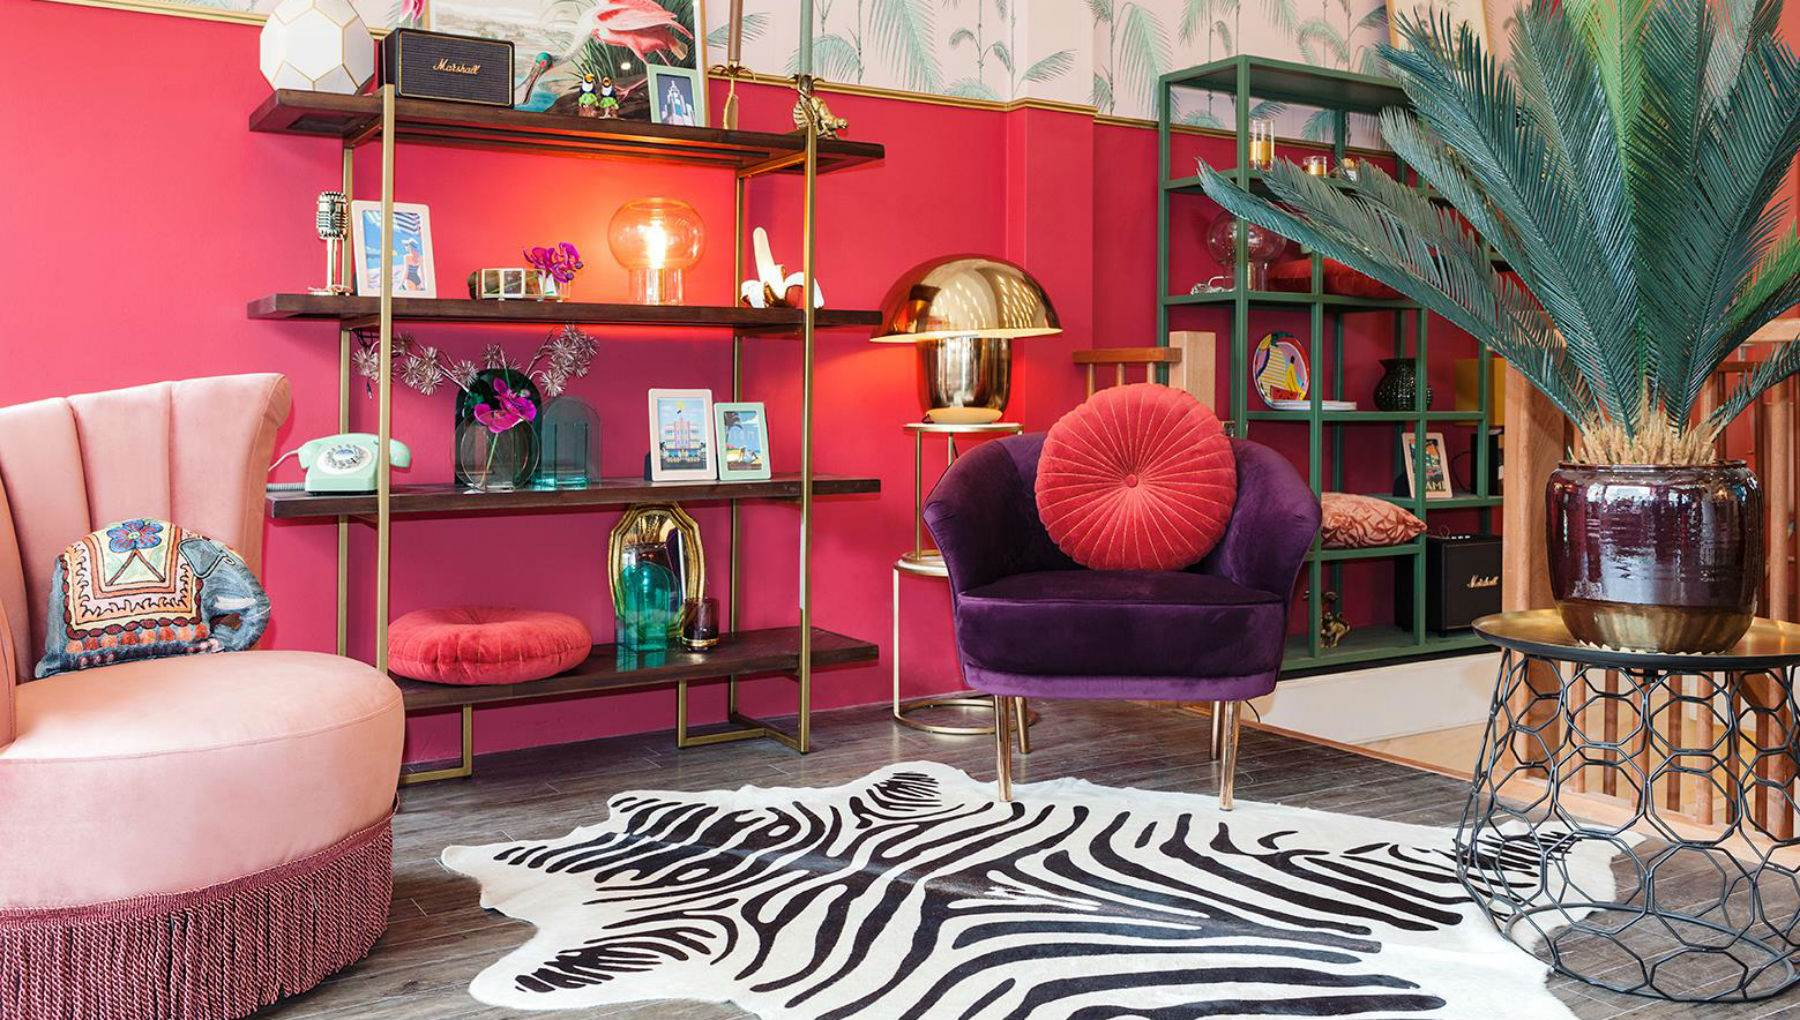 Top 10 Design Stores In Amsterdam I Amsterdam